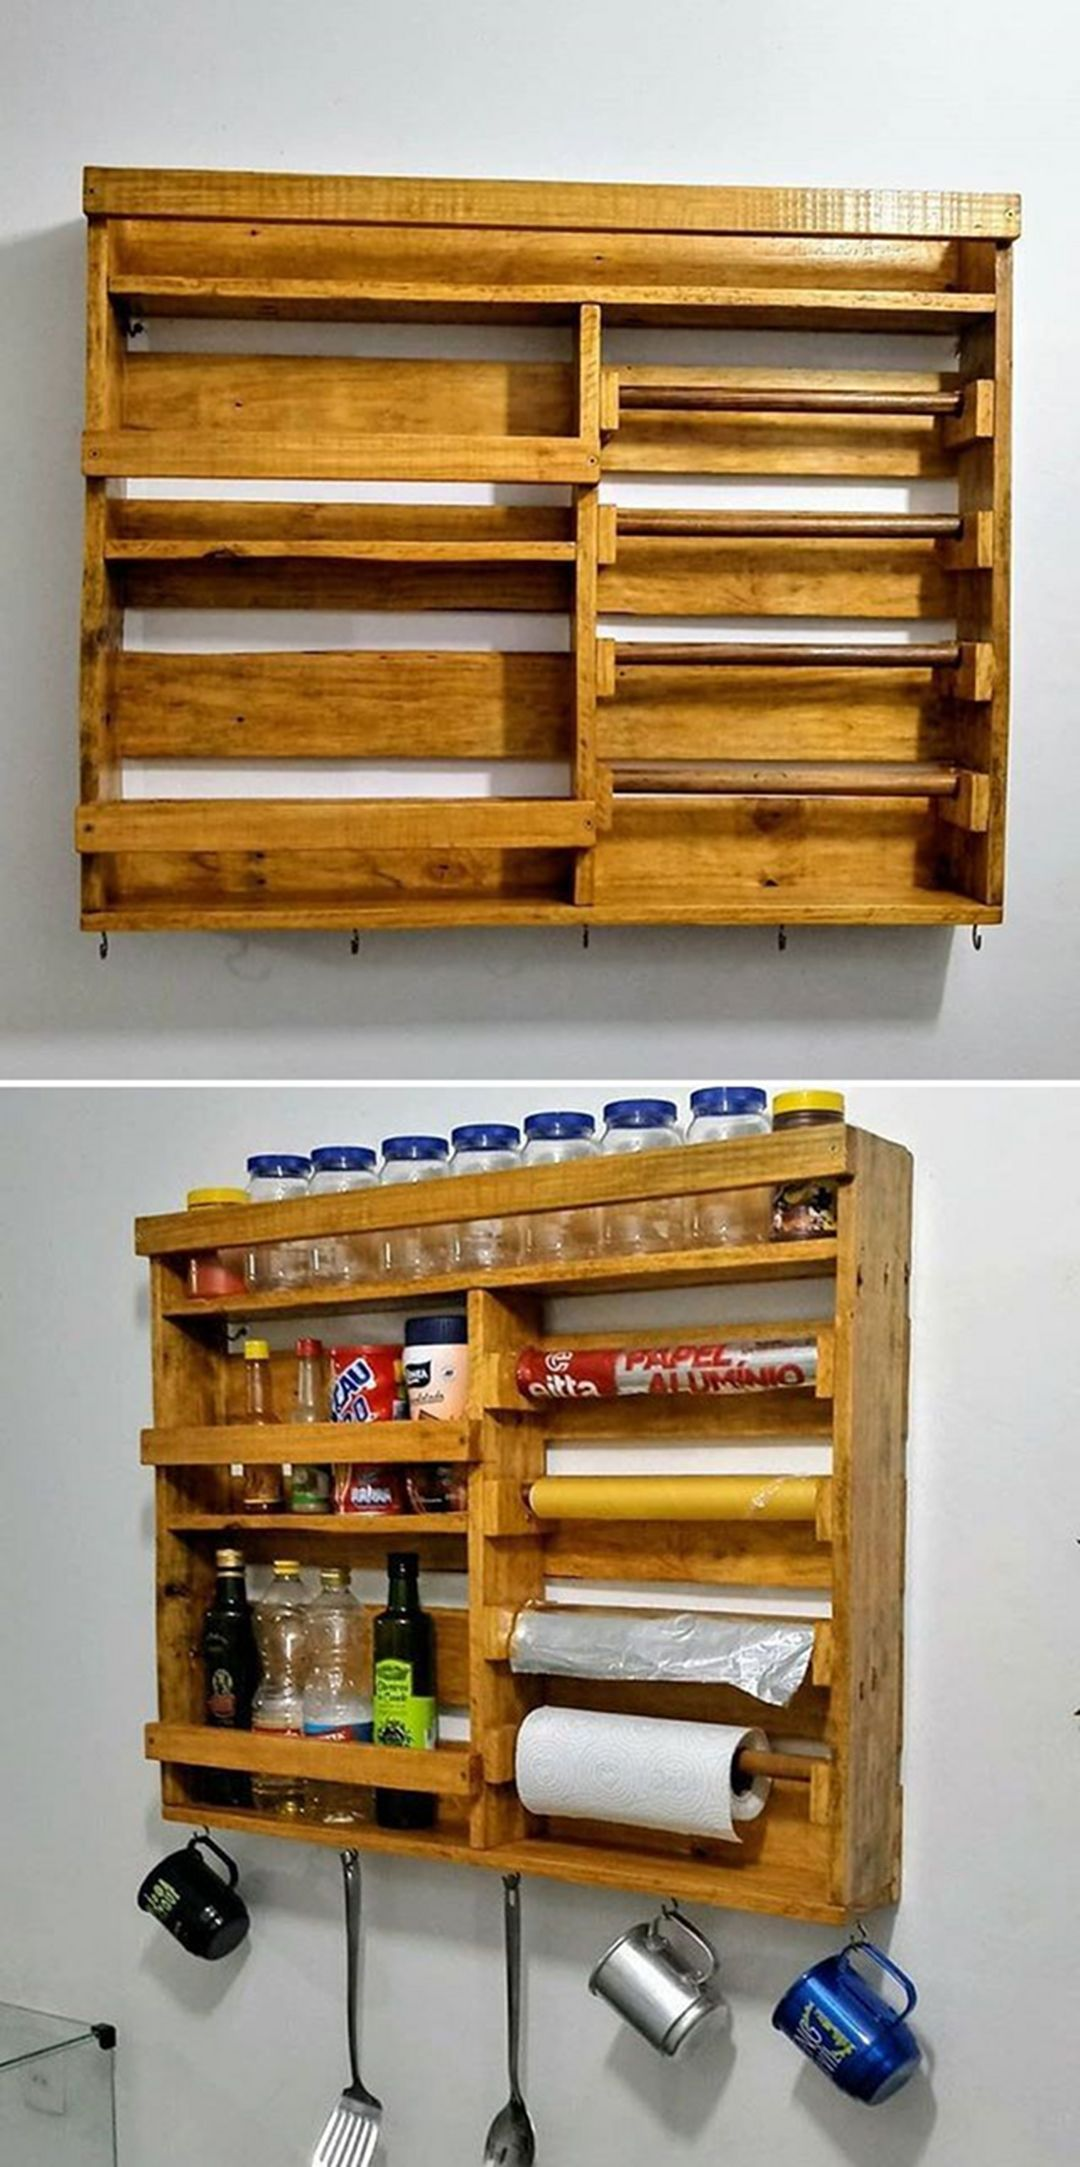 35 Most Easy Diy Wood Pallet Project For Home Decorations Diy Wood Pallet Projects Wooden Pallet Projects Diy Pallet Furniture